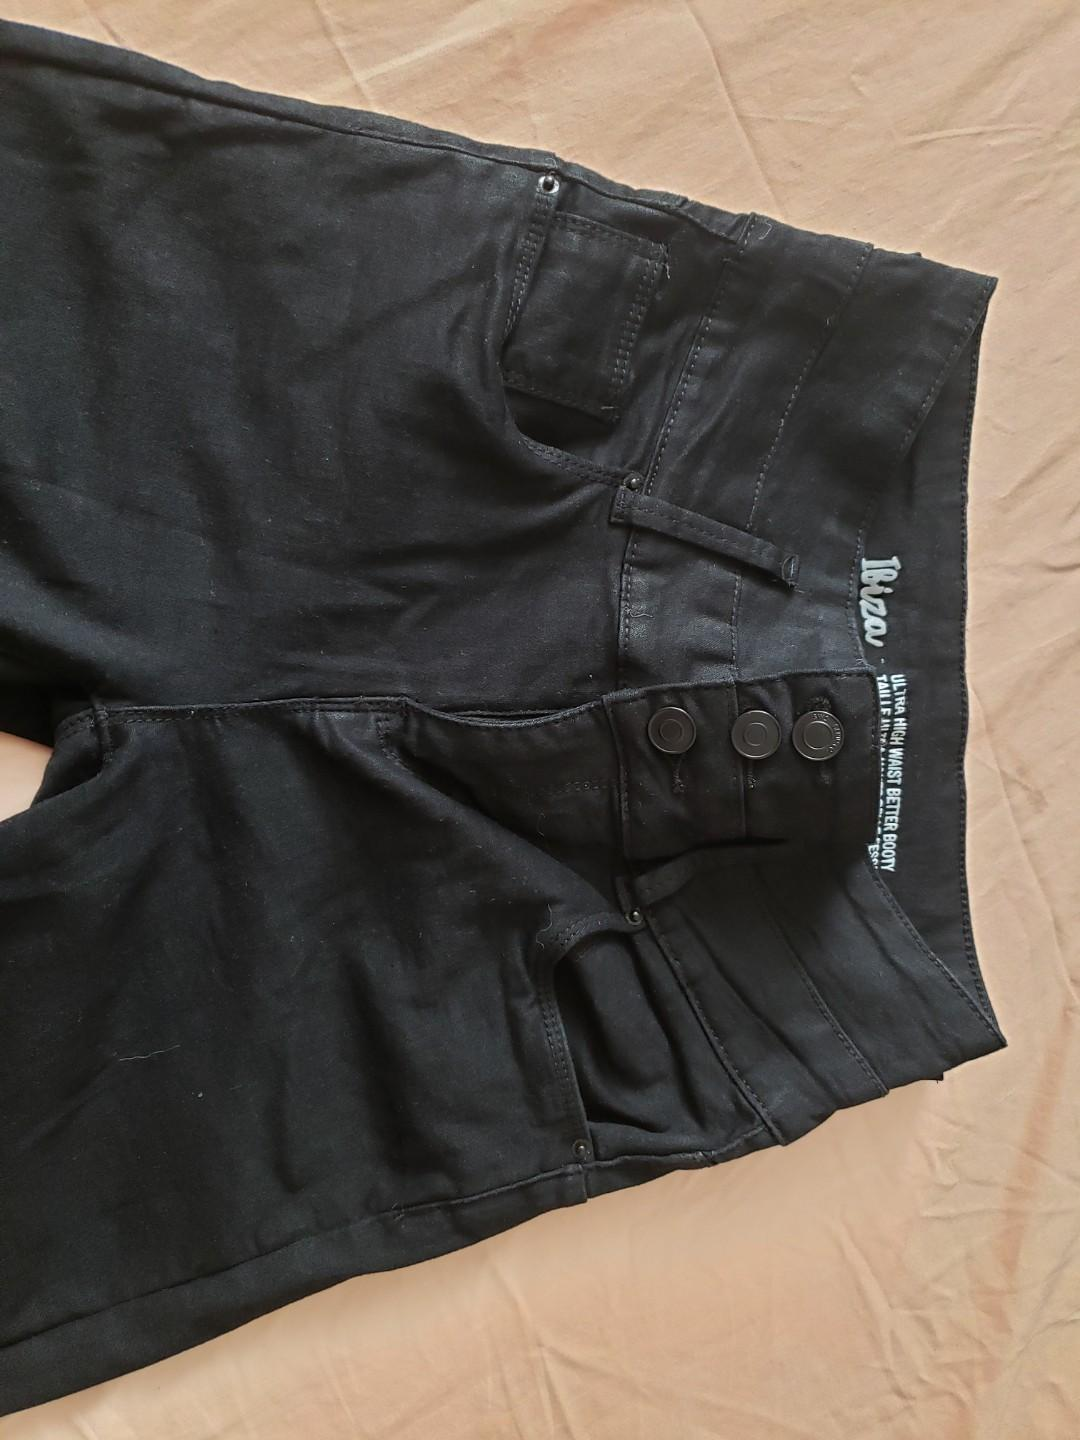 3 tier ultra high waist better booty black jeans size 3 (new without tags)